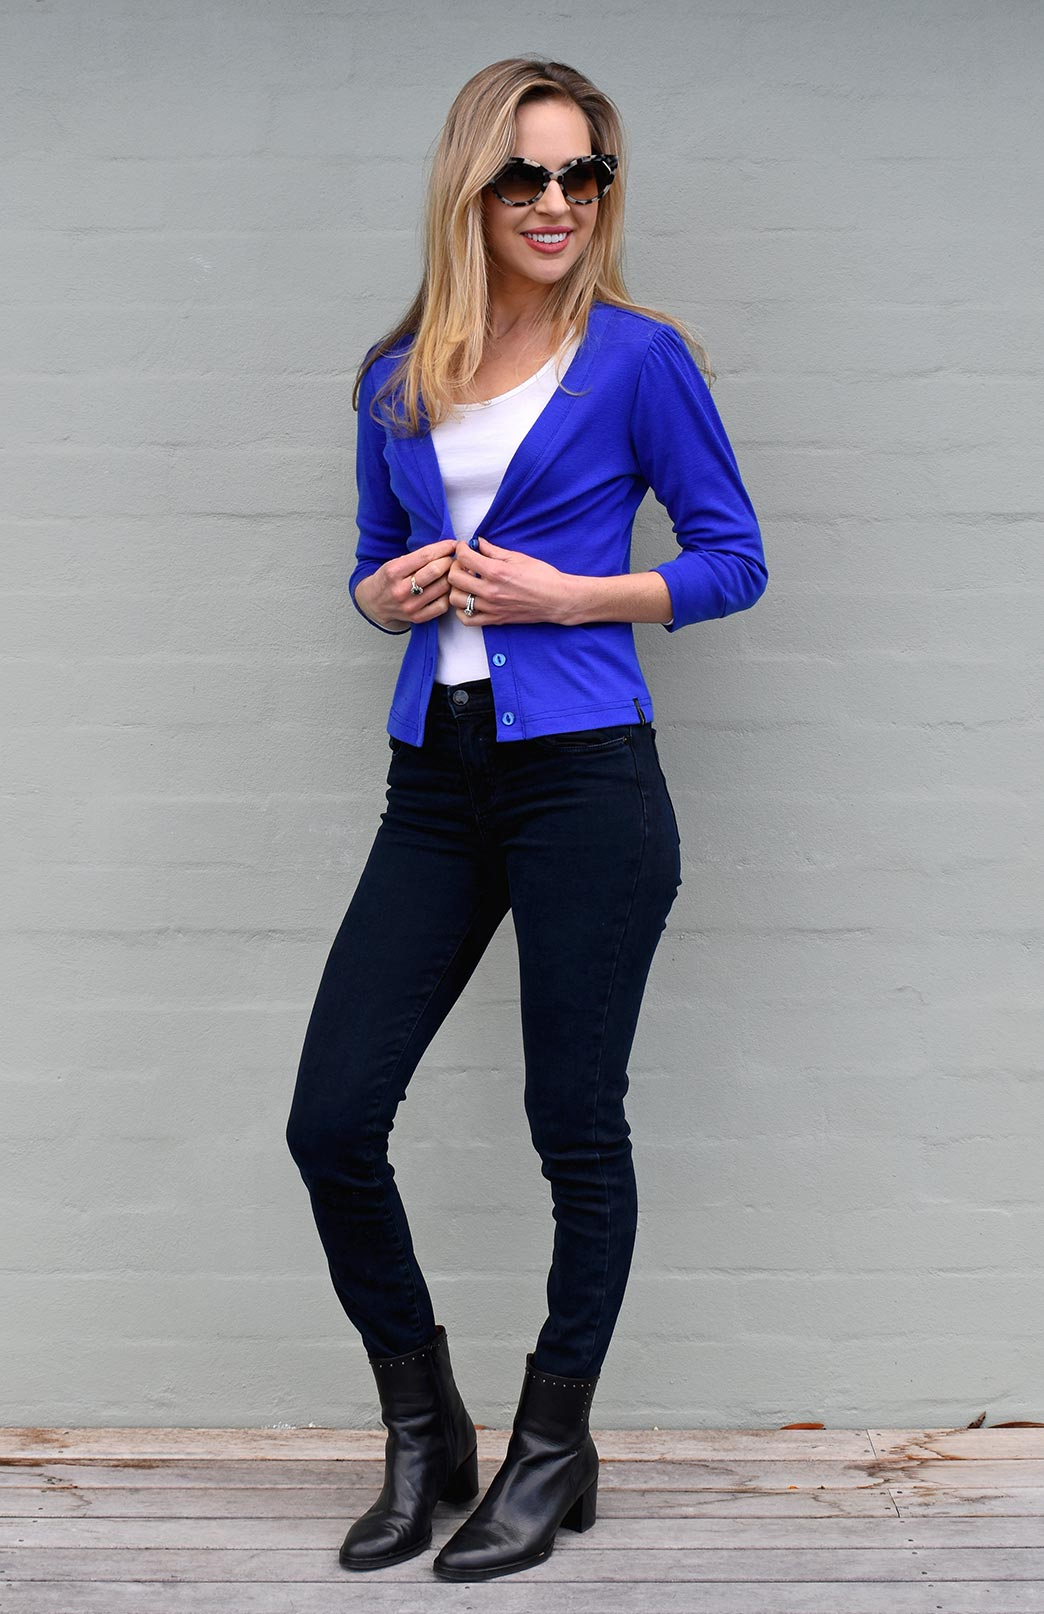 Crop Cardigan - 3/4 Sleeve - Women's Blue Crop Short Cardigan with 3/4 Sleeves and Buttons - Smitten Merino Tasmania Australia